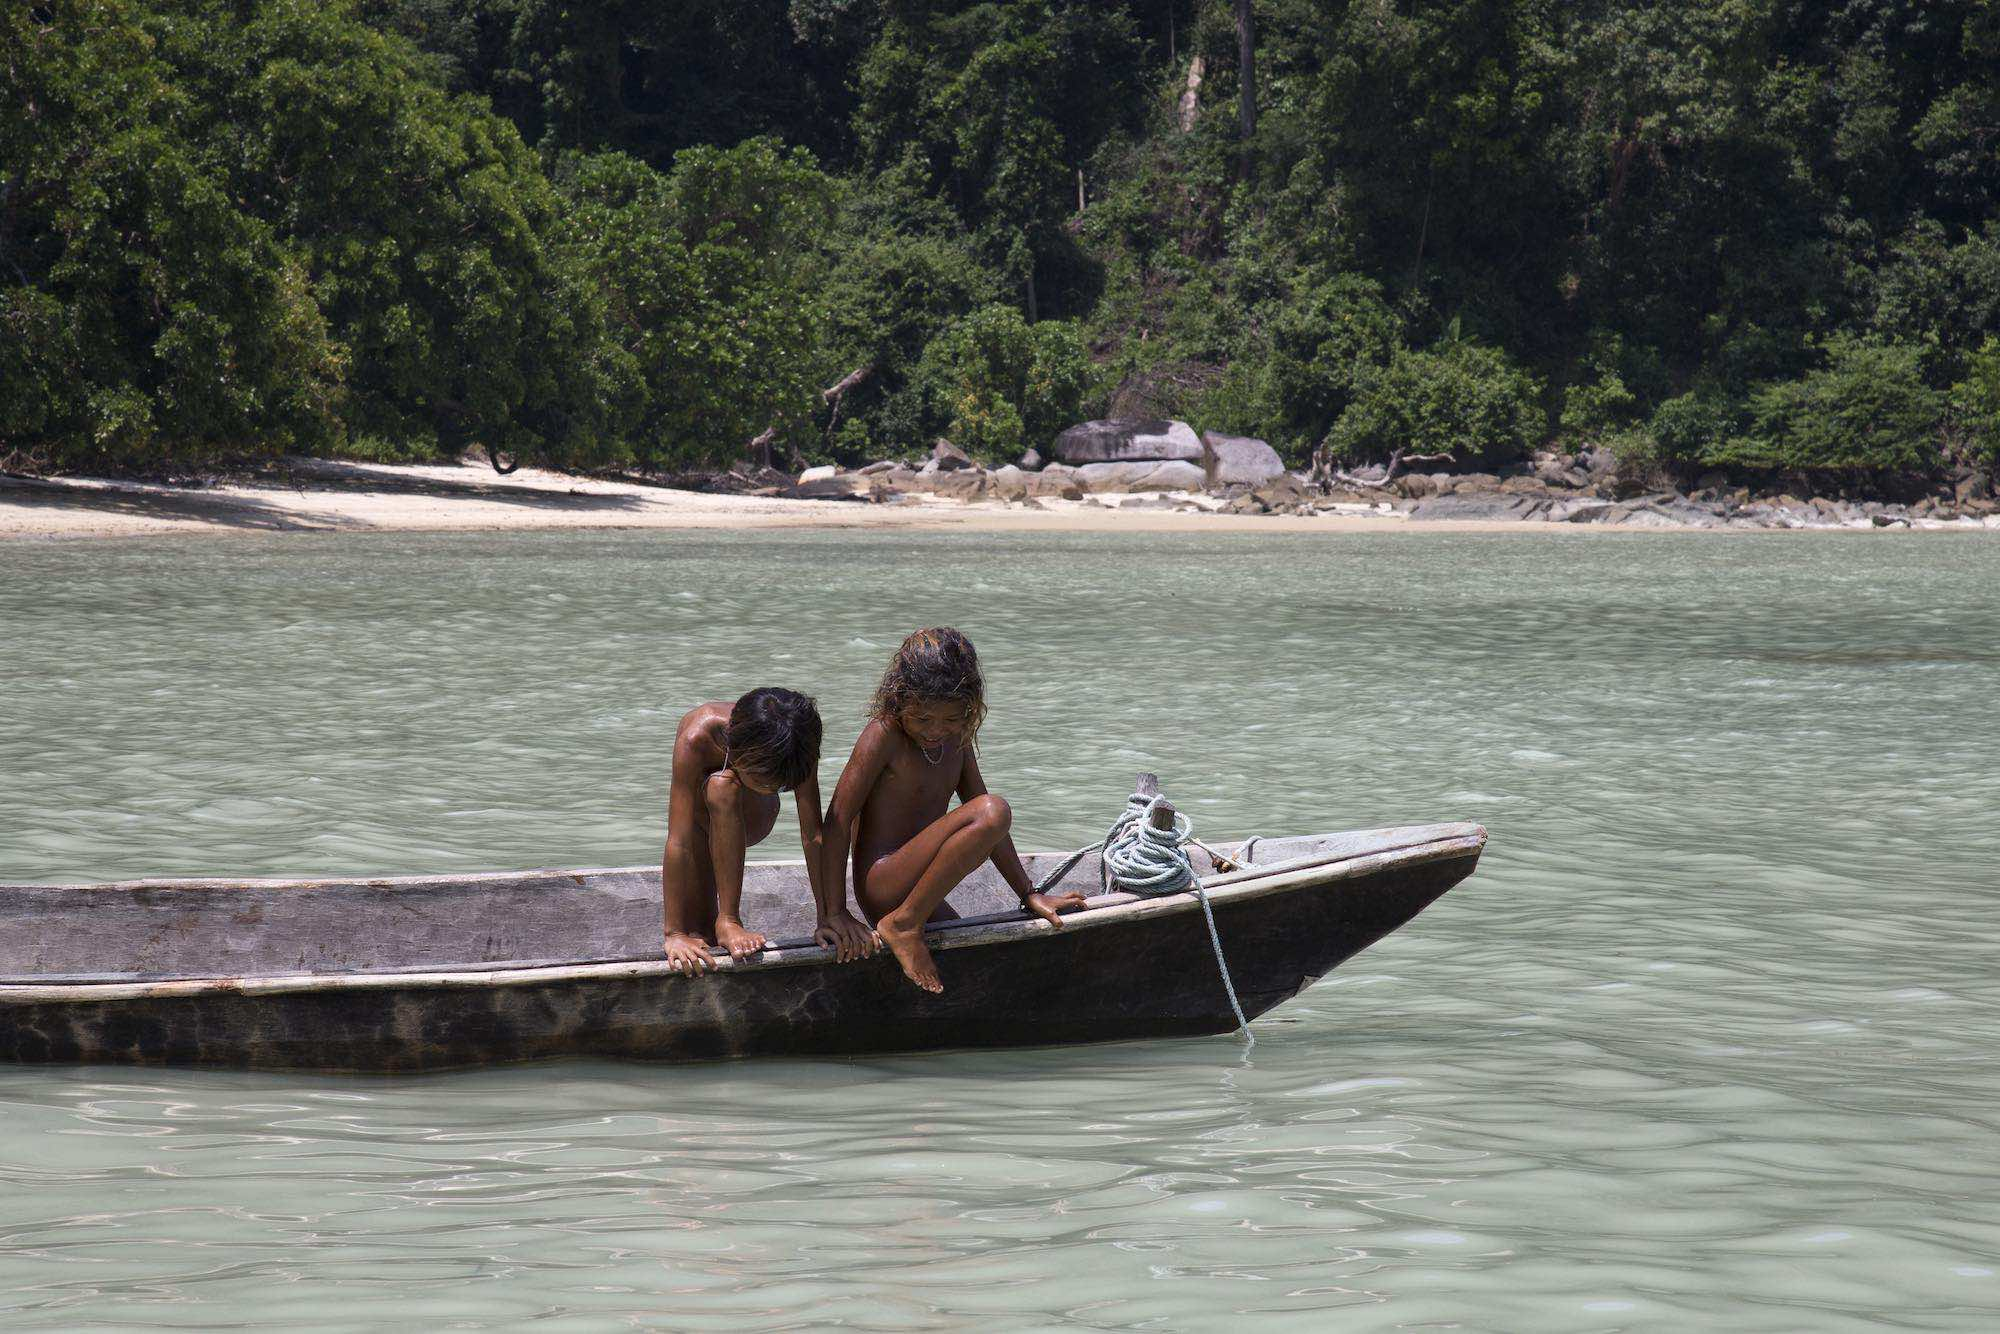 49.Memm and her friend on a dug-out in the shallows of the Andaman Sea.jpeg